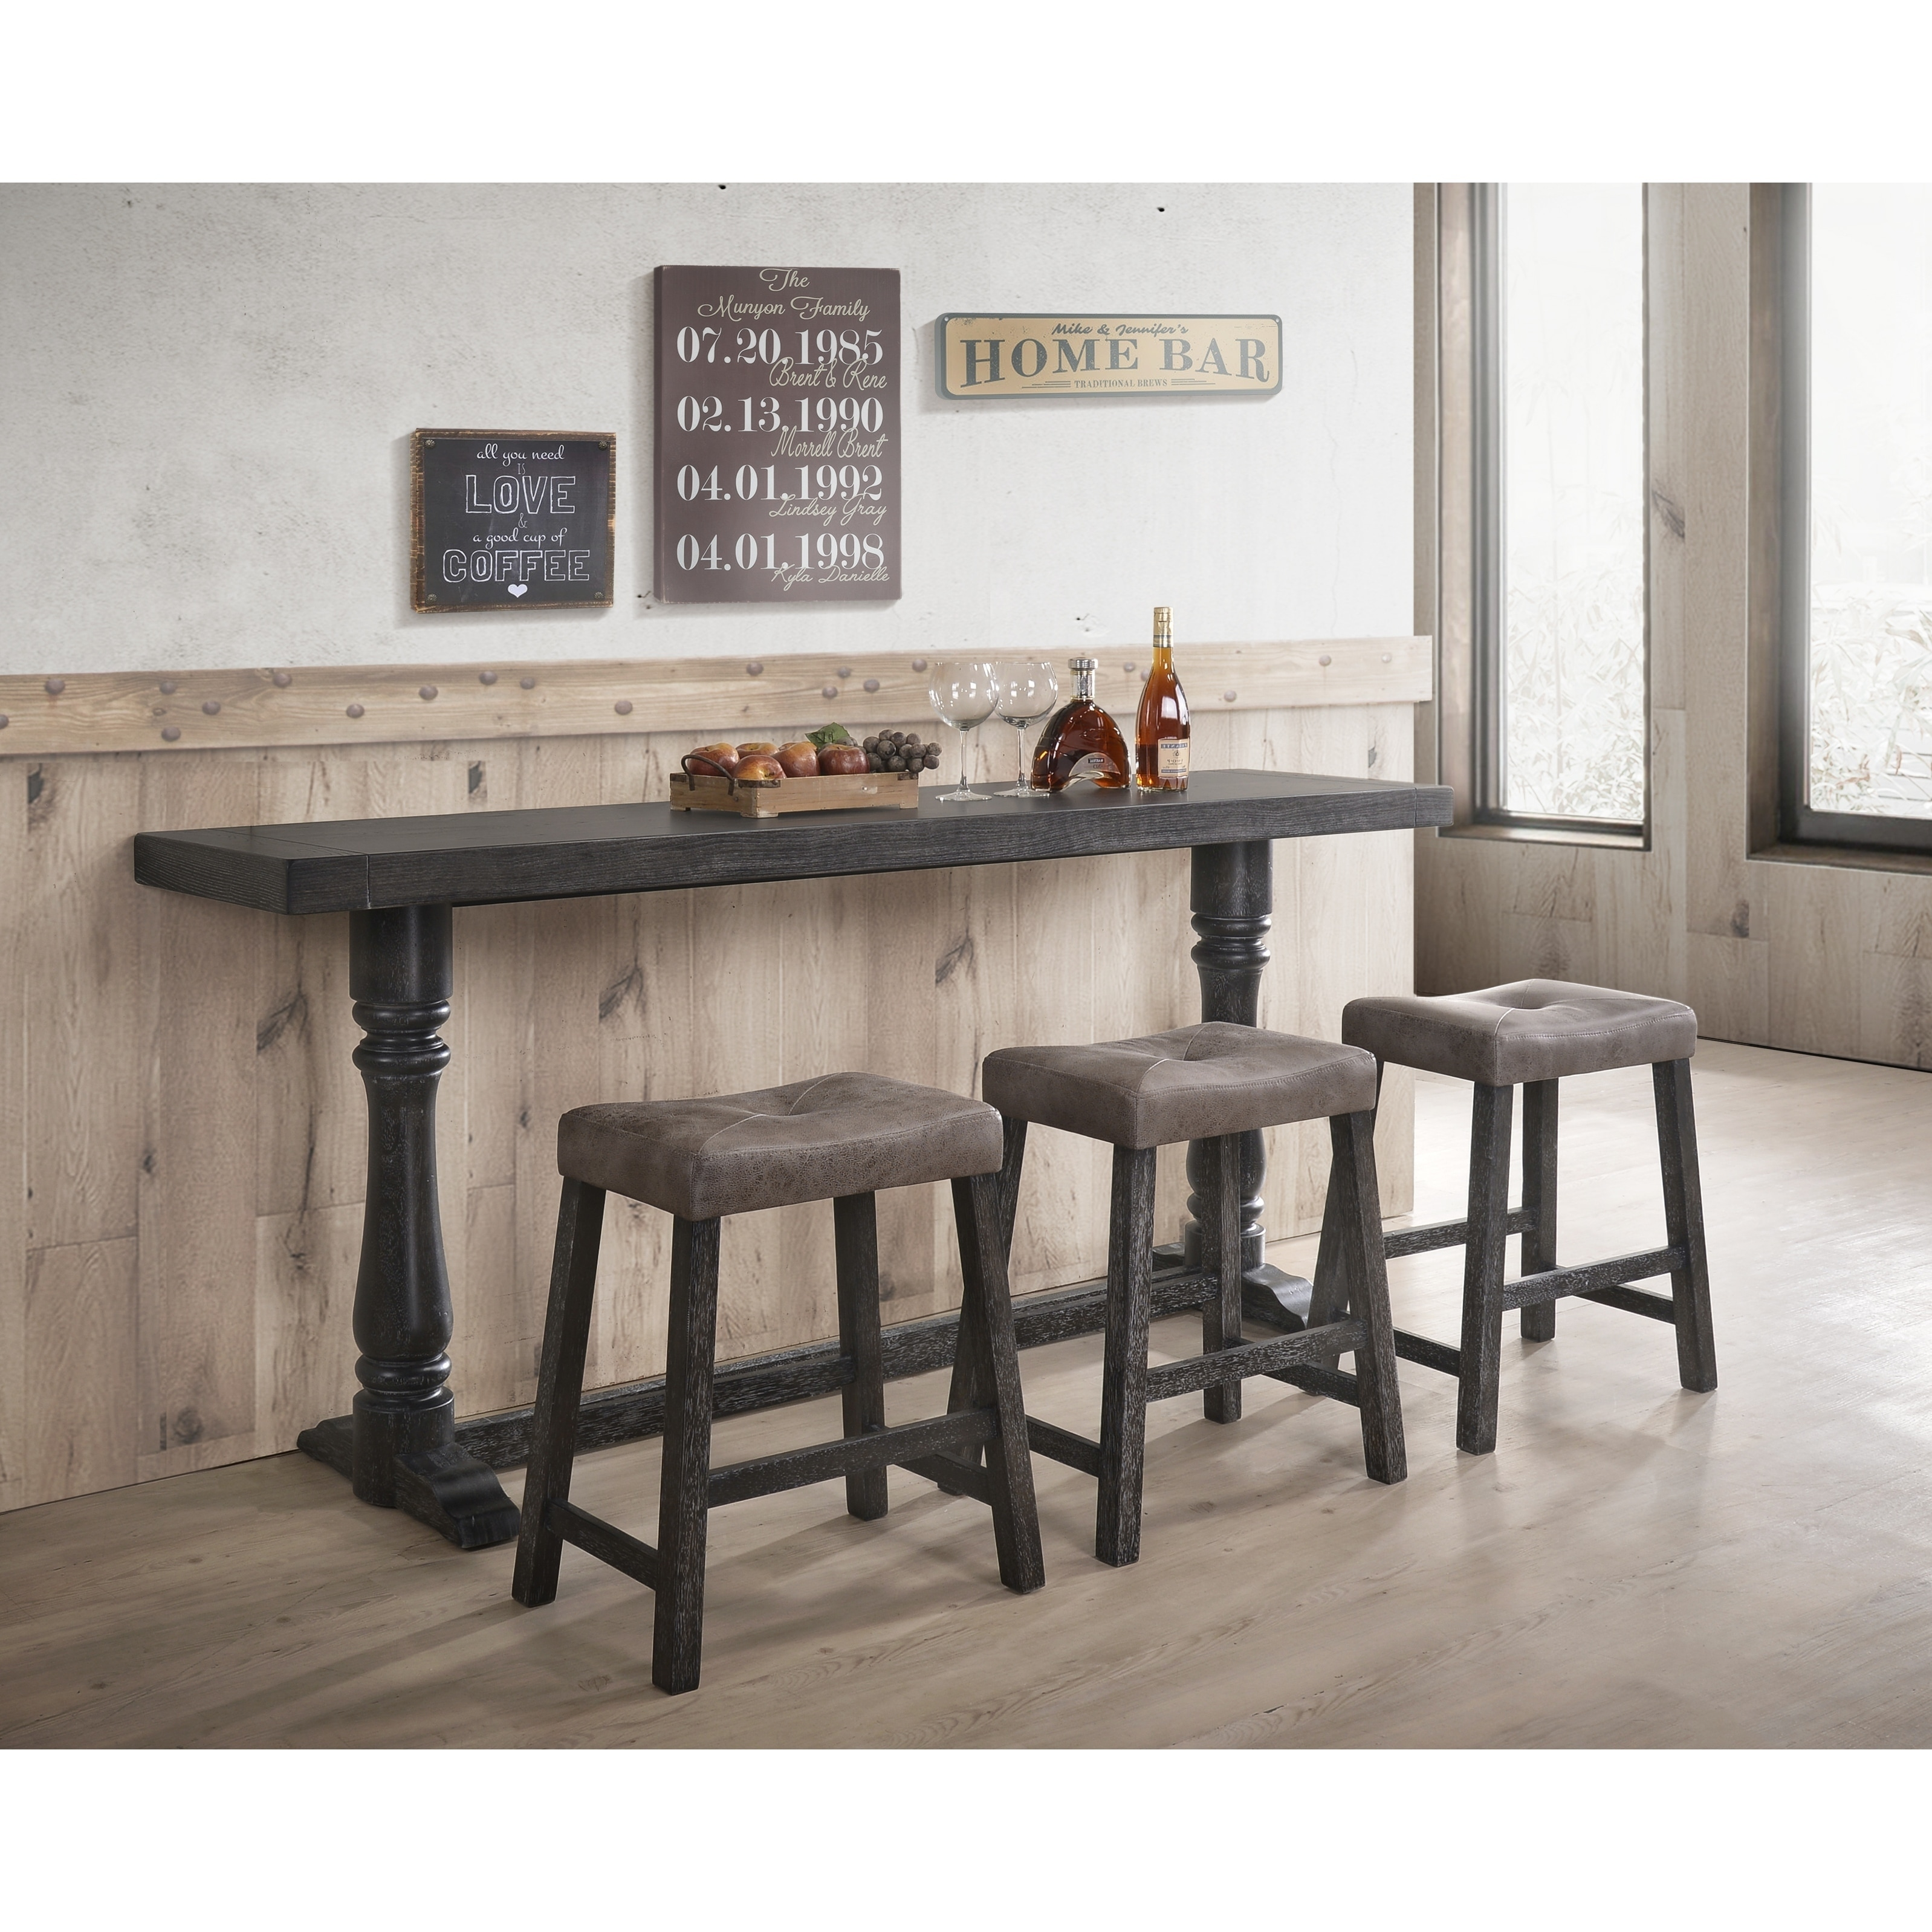 The Gray Barn Uppercross Charcoal Counter Stools (Set of 2)